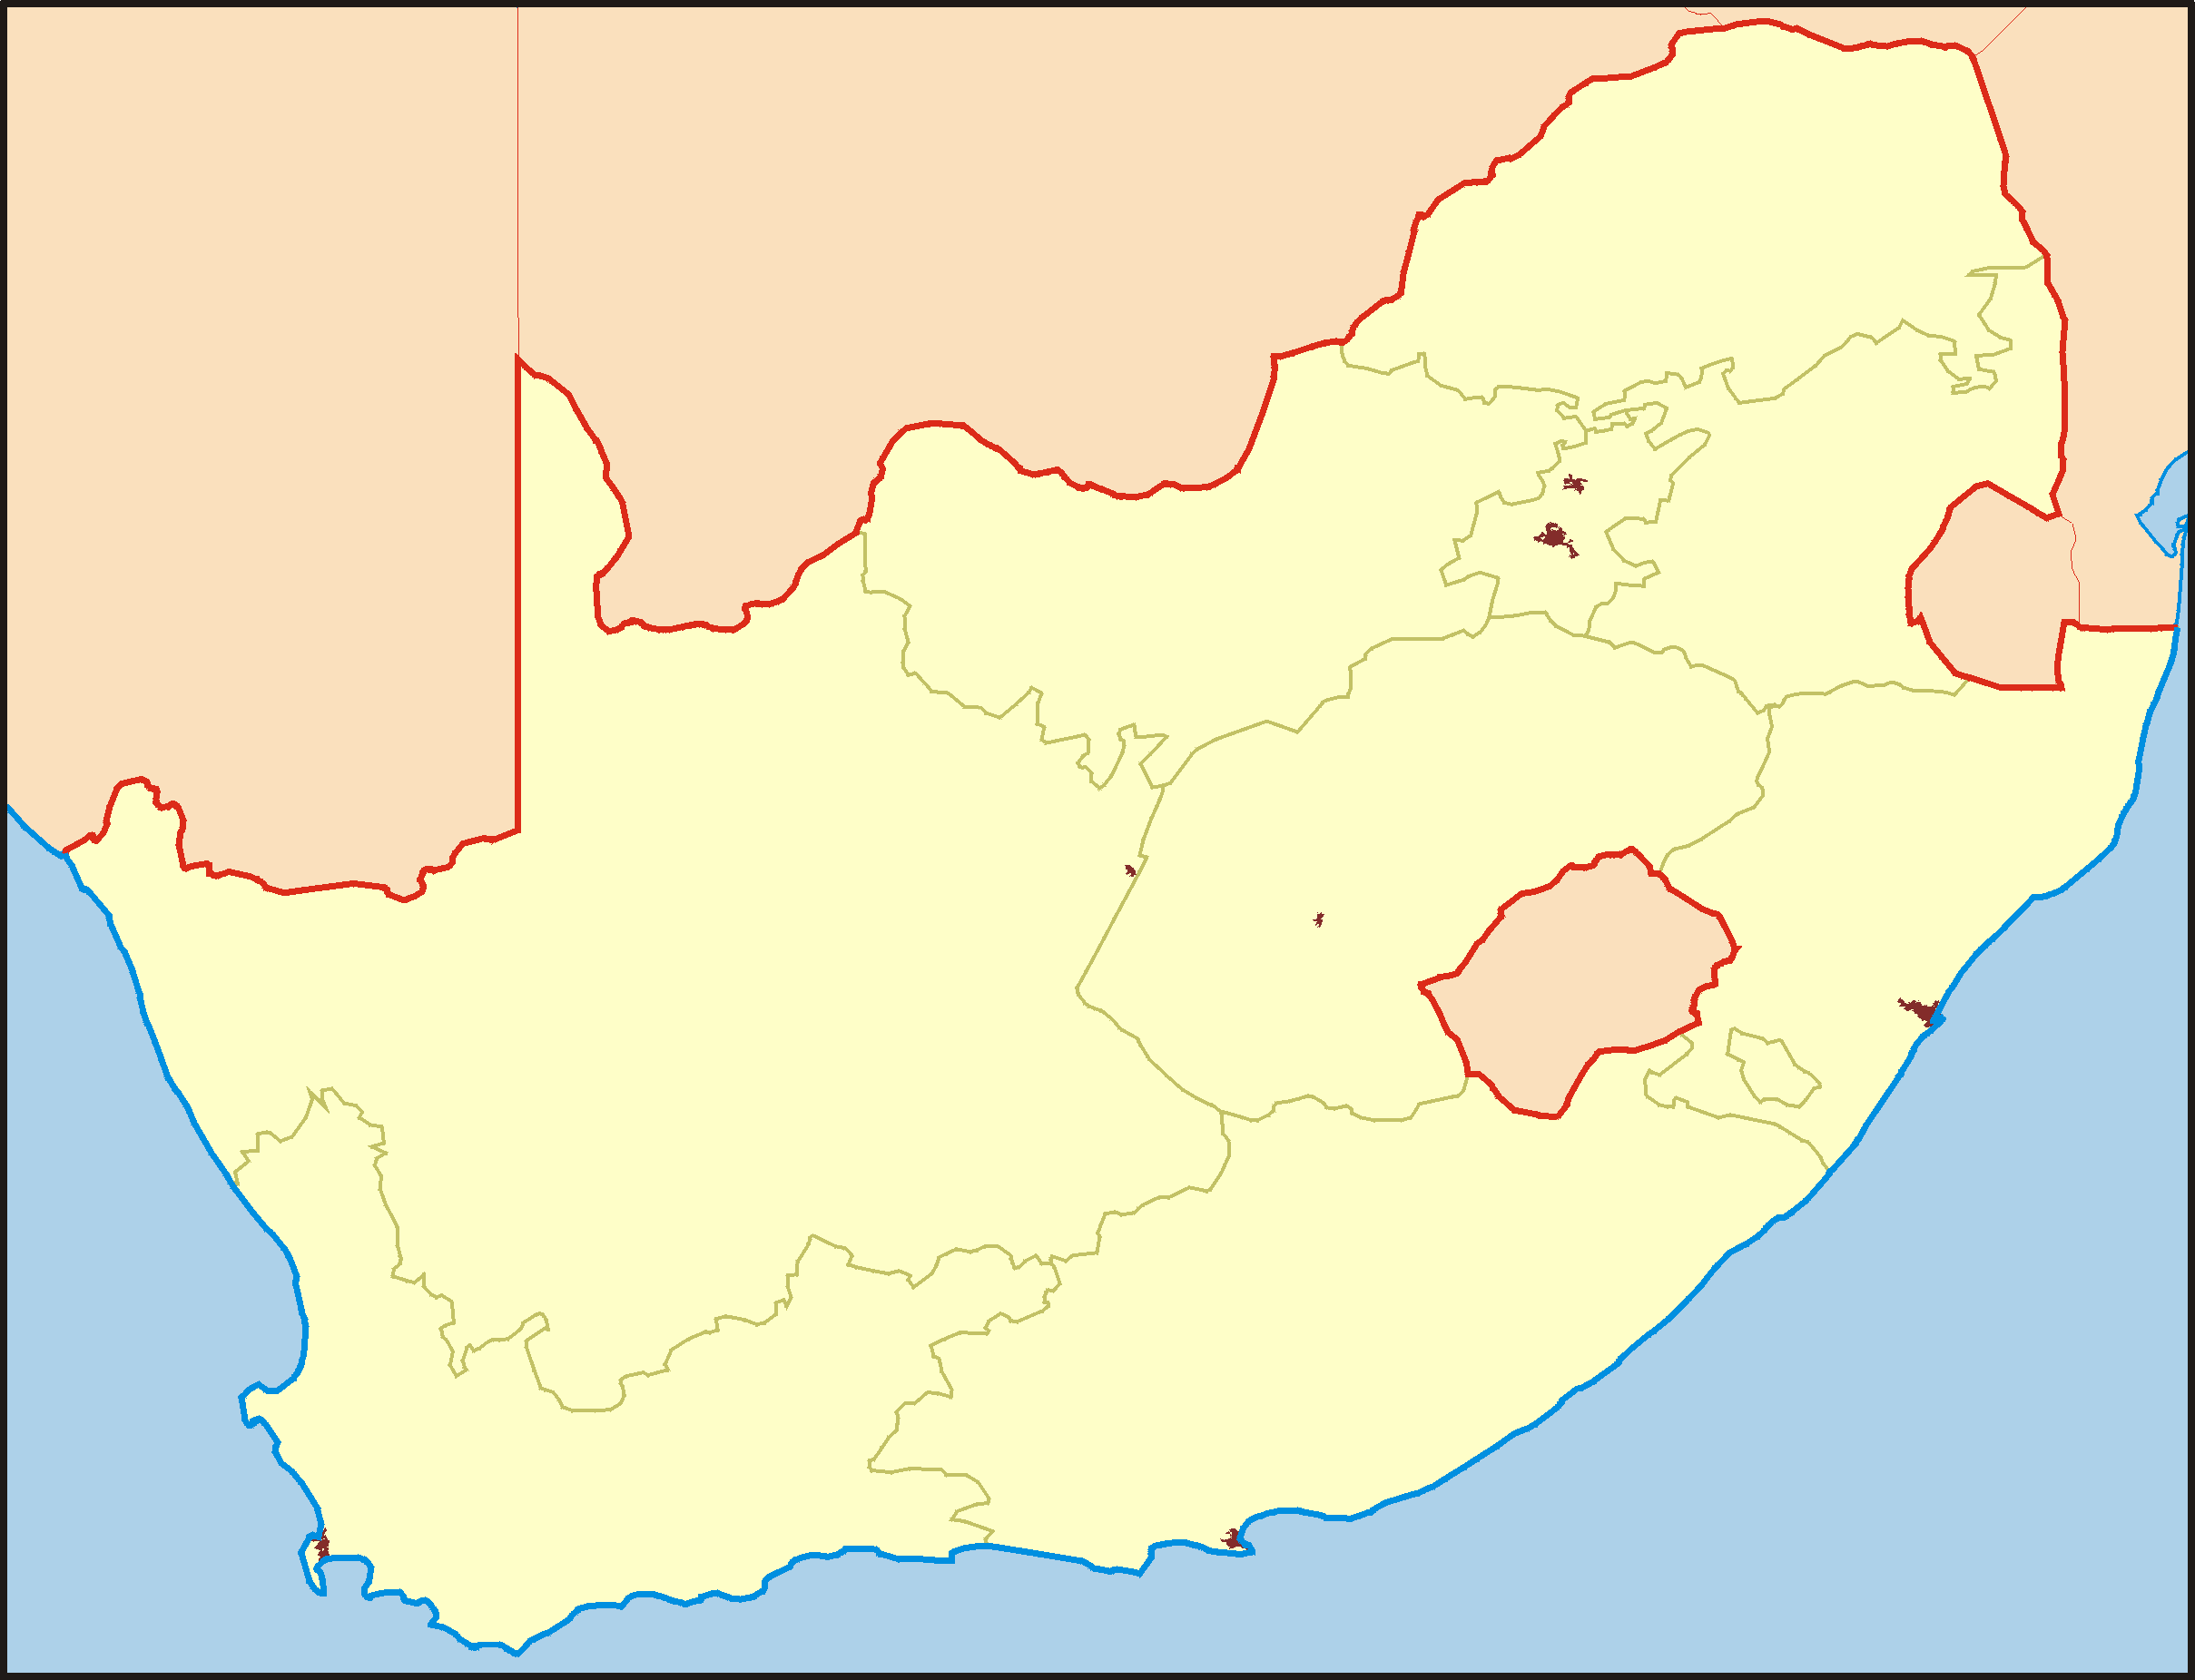 South Africa Ocation large map